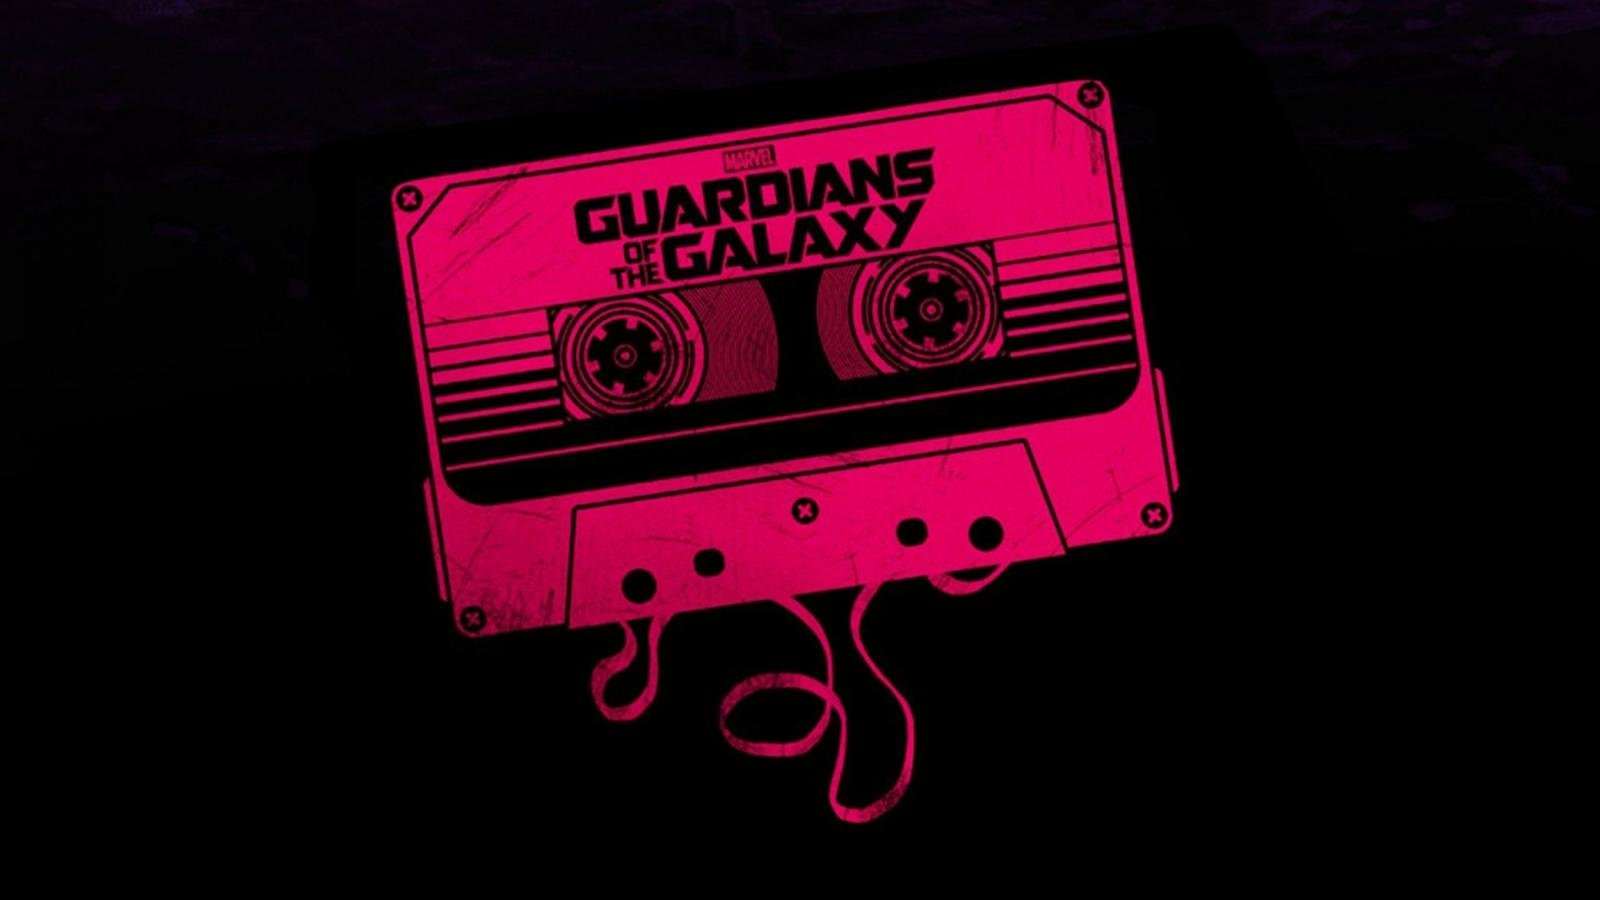 Guardians Of The Galaxy Wallpapers 1600x900 Desktop Backgrounds